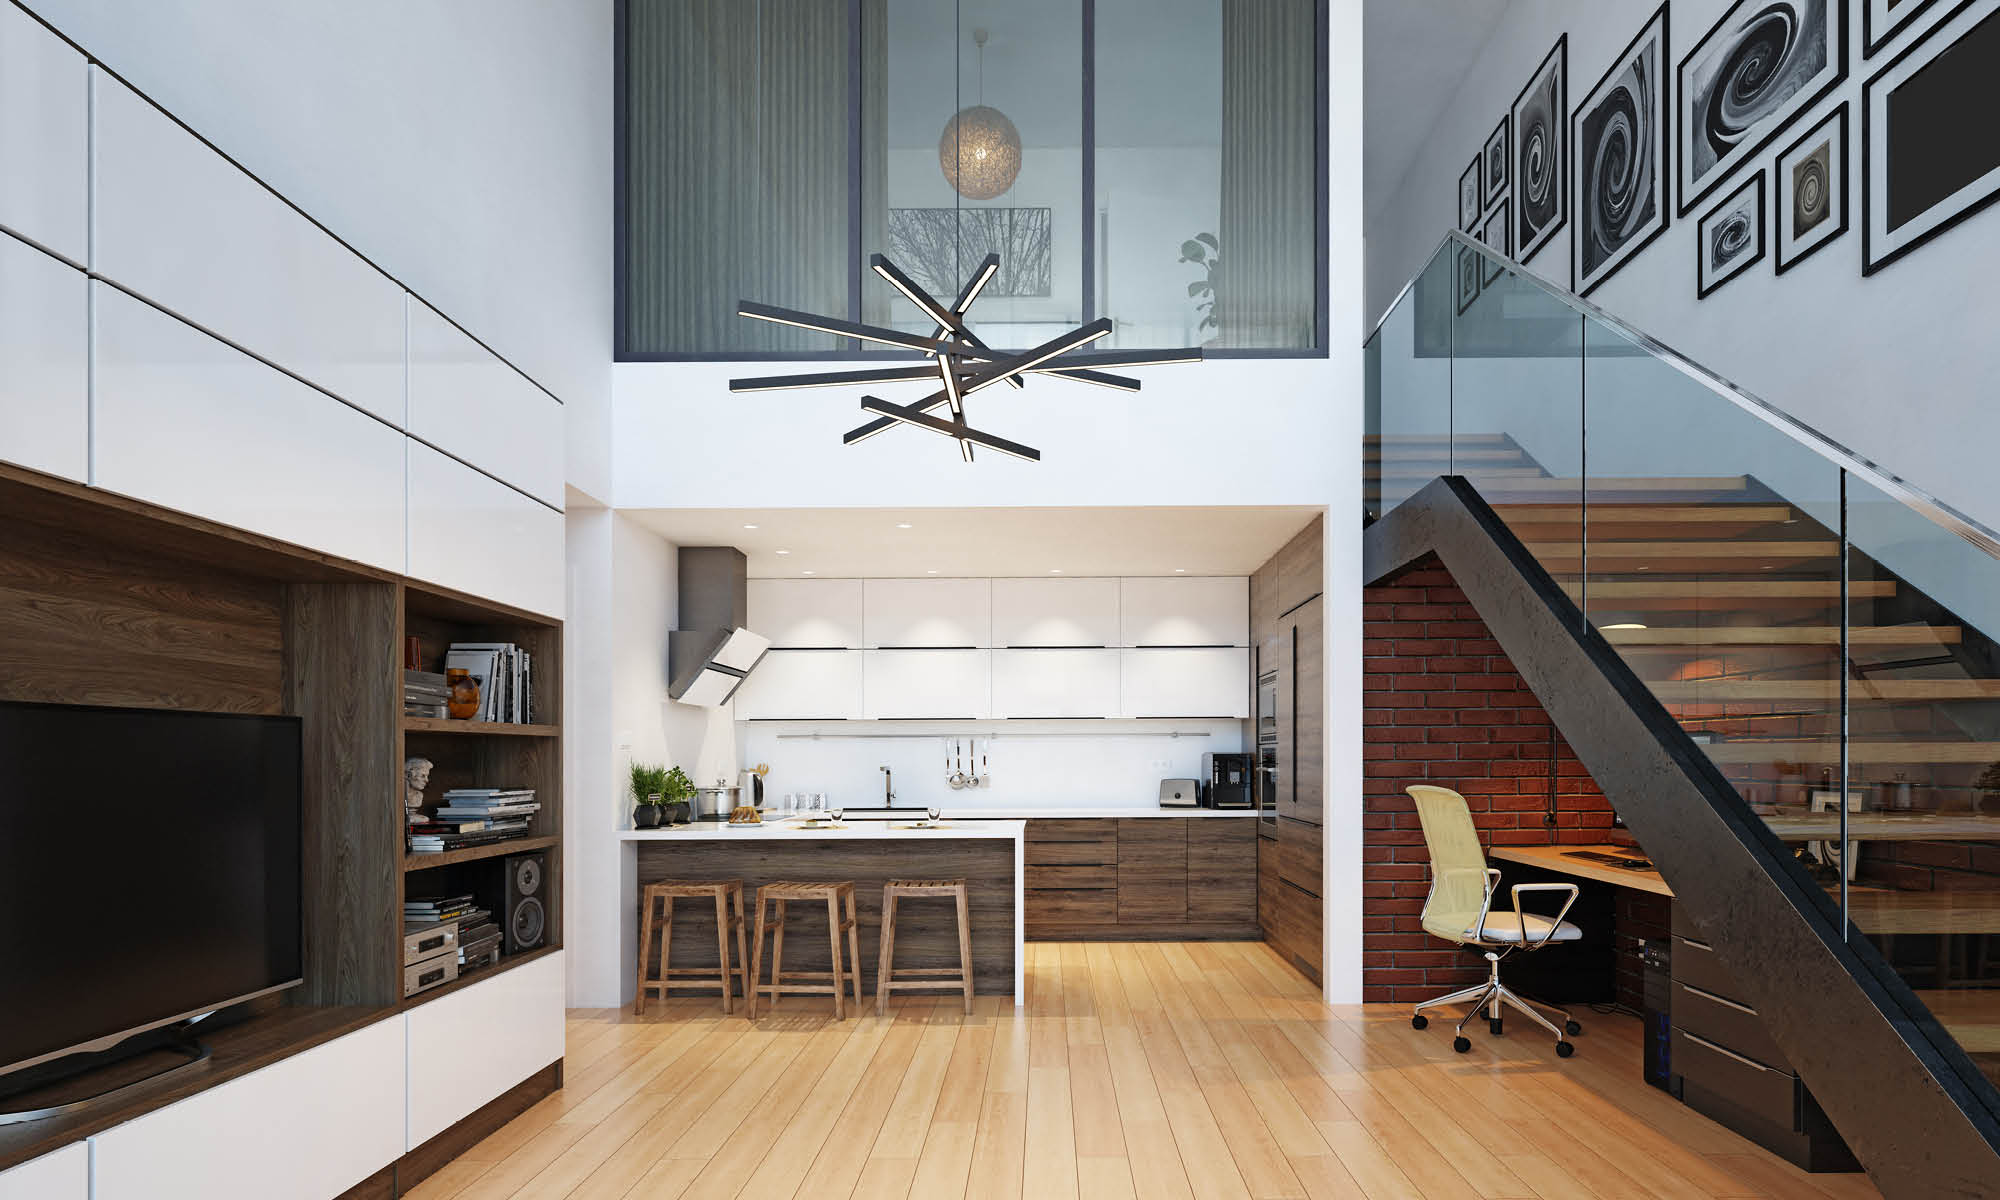 Staircase design ideas to make optimal use of space